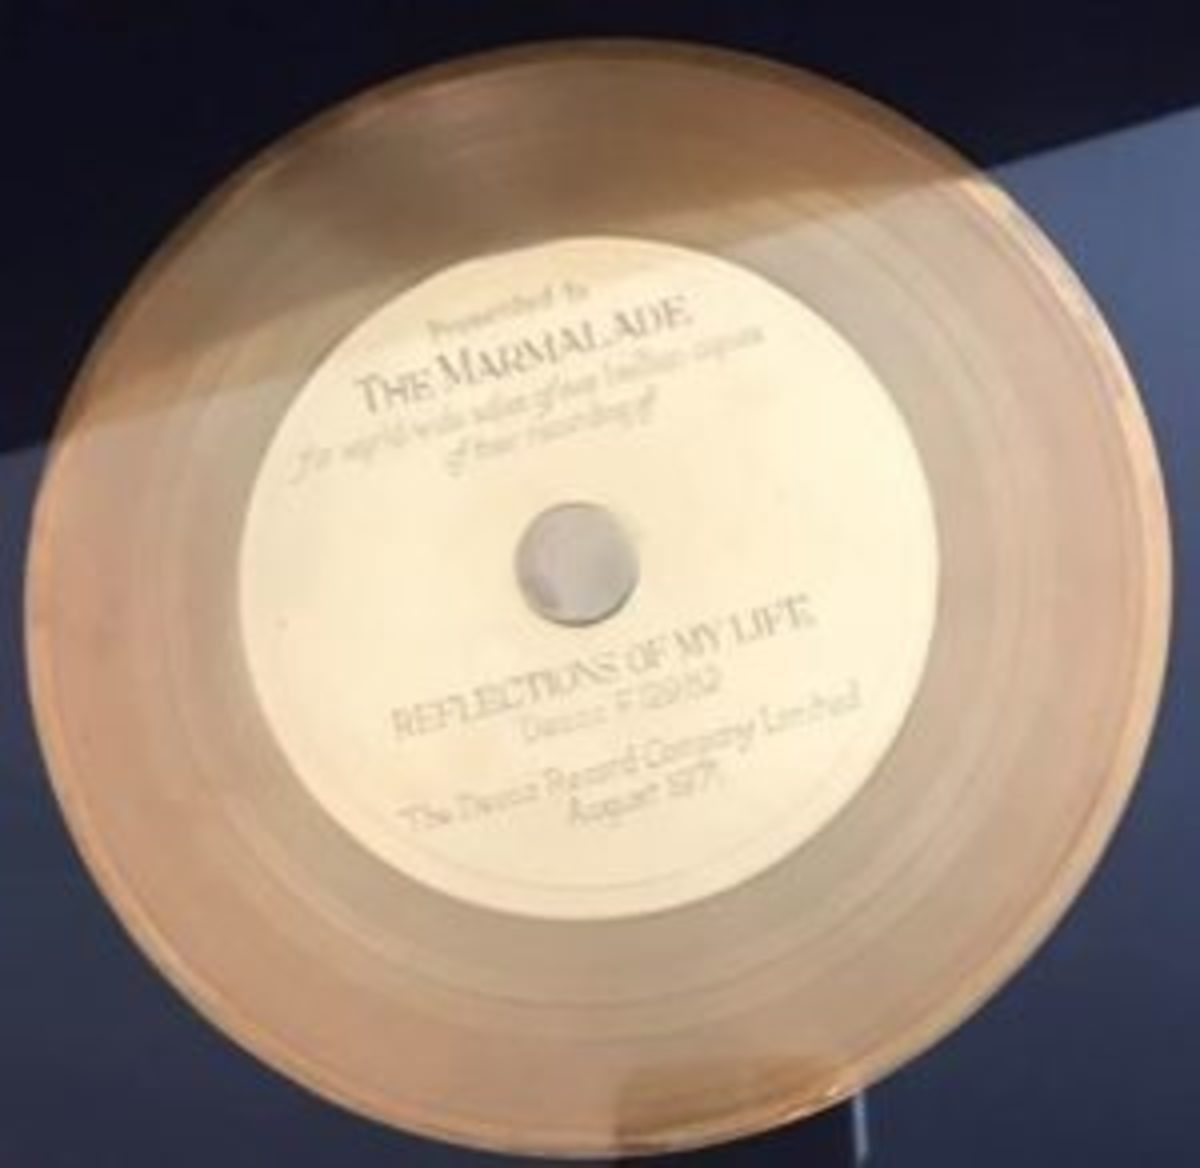 Gold record, courtesy of Tracey McAleese-Gorman